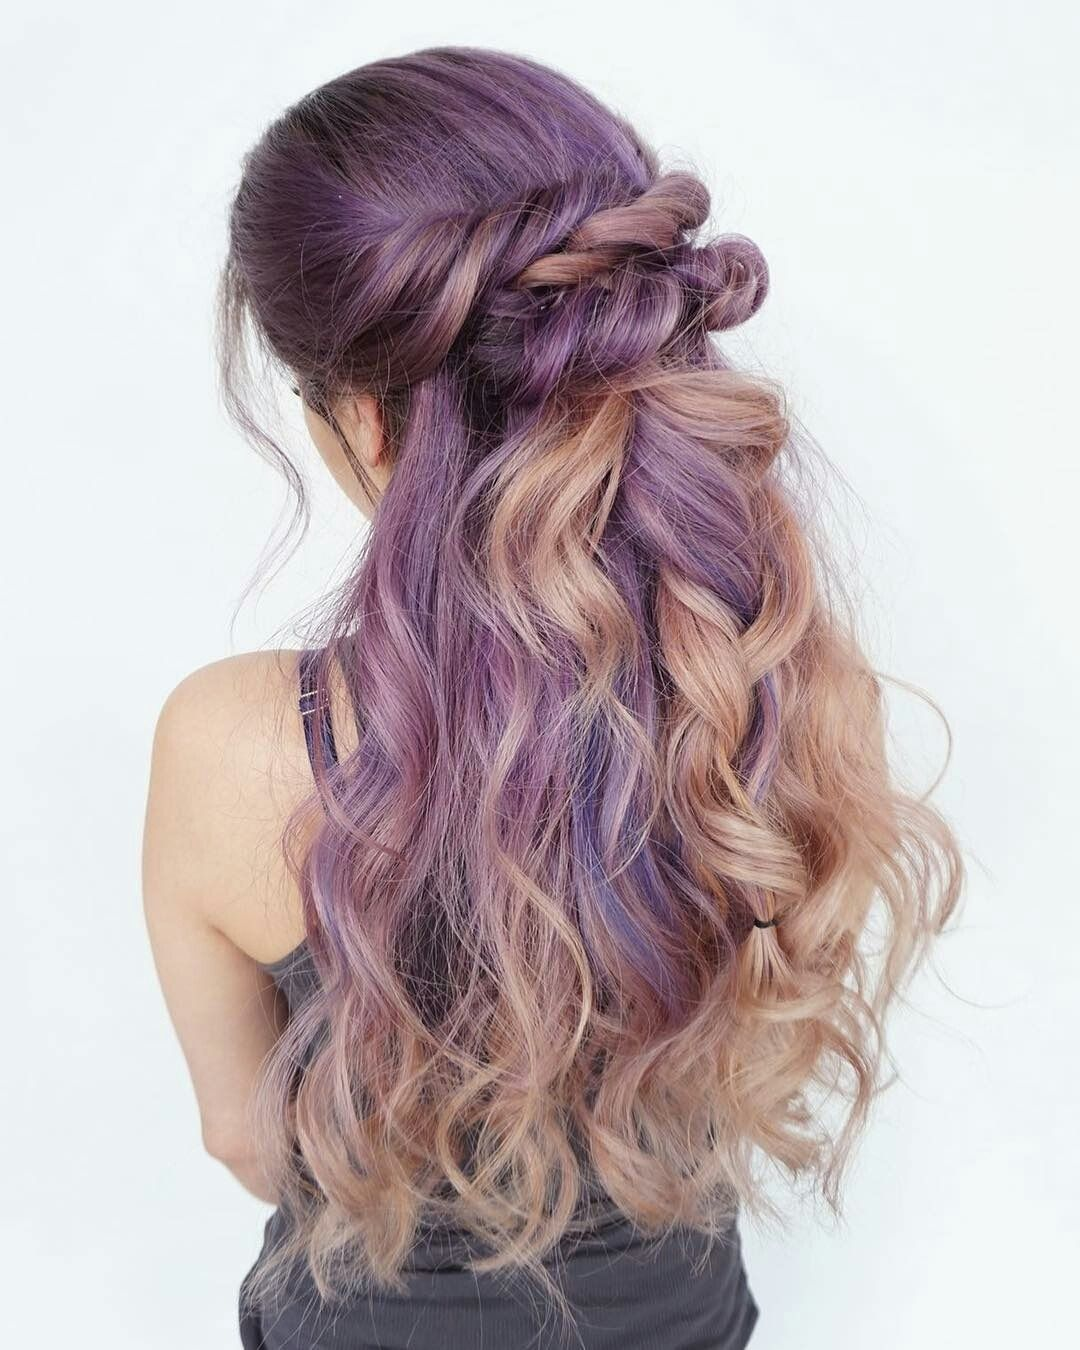 See the best girls hairstyle ideas easy and quick hairstyles for